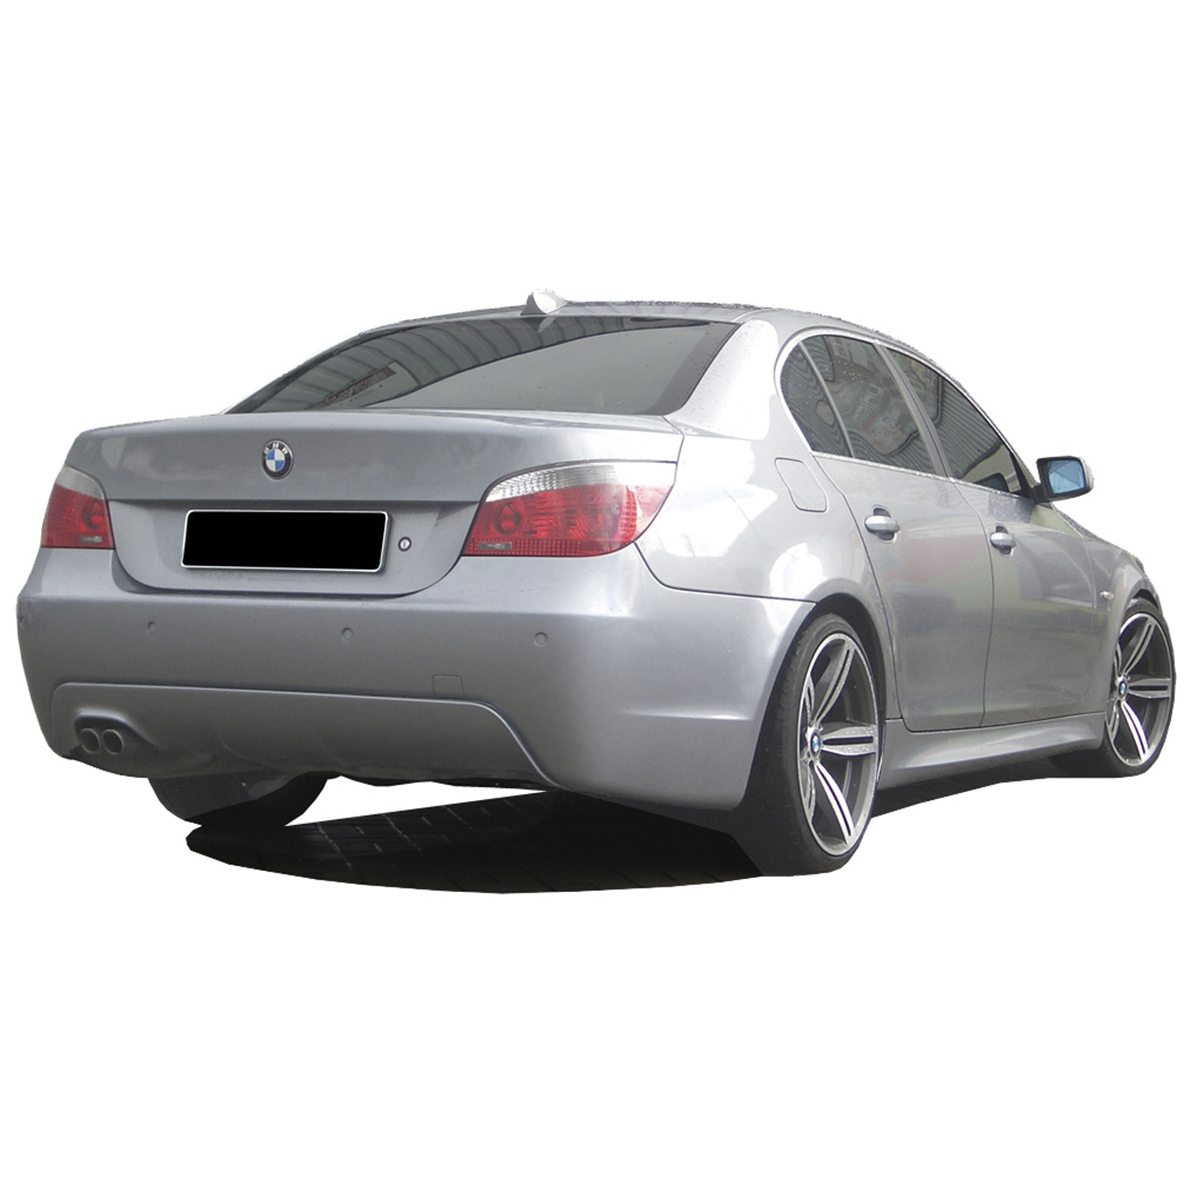 BMW-E60-M-Look-Tras-PCU1211